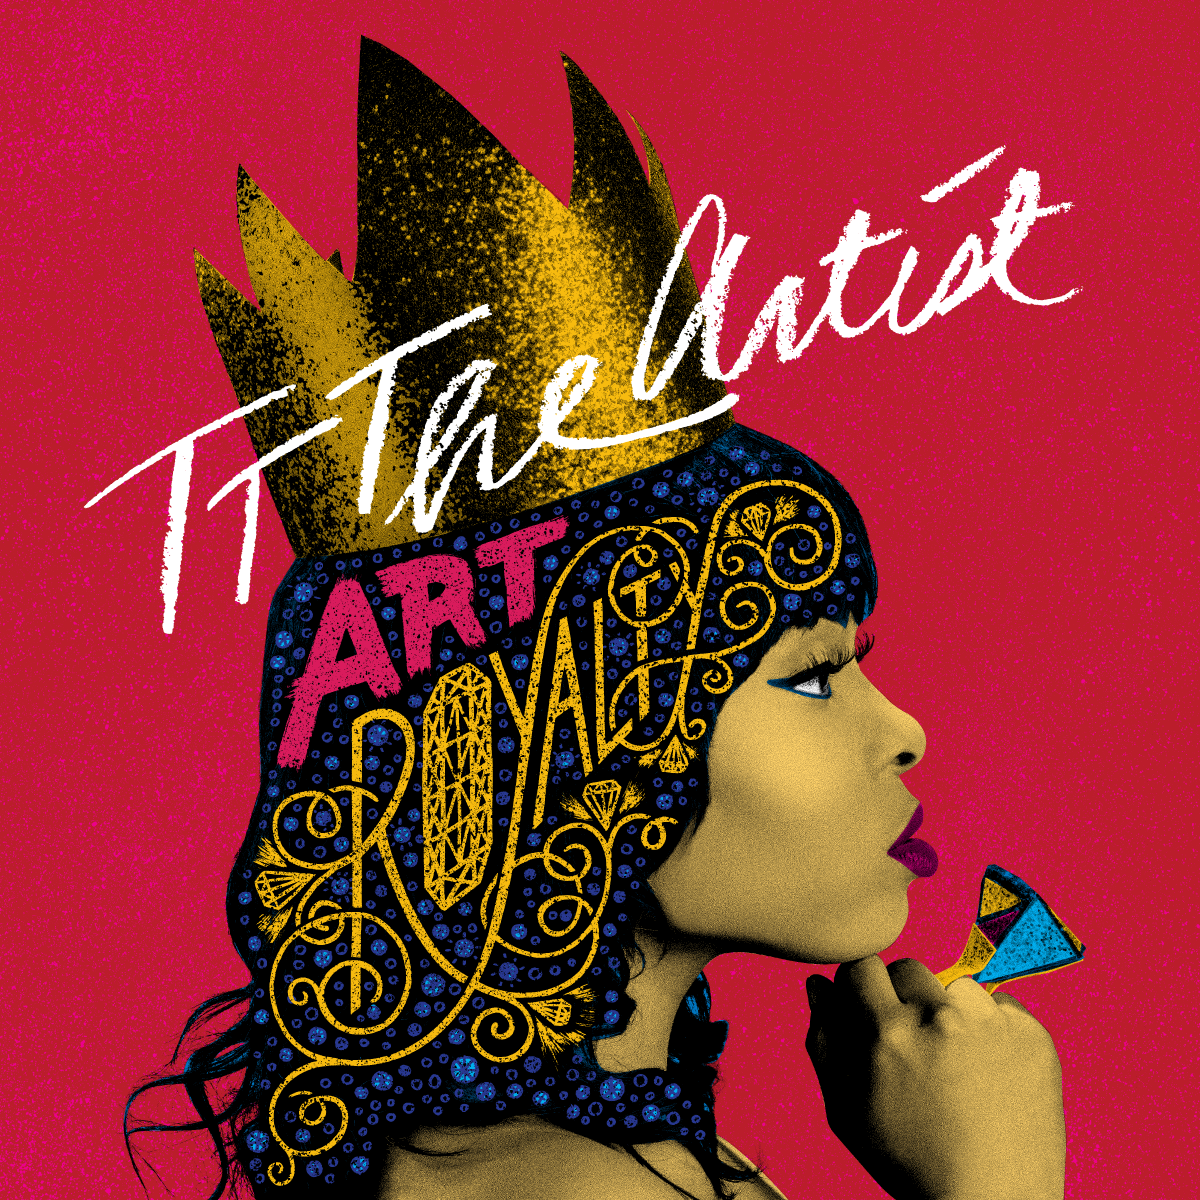 Art Royalty Cover(TT The Artist).png